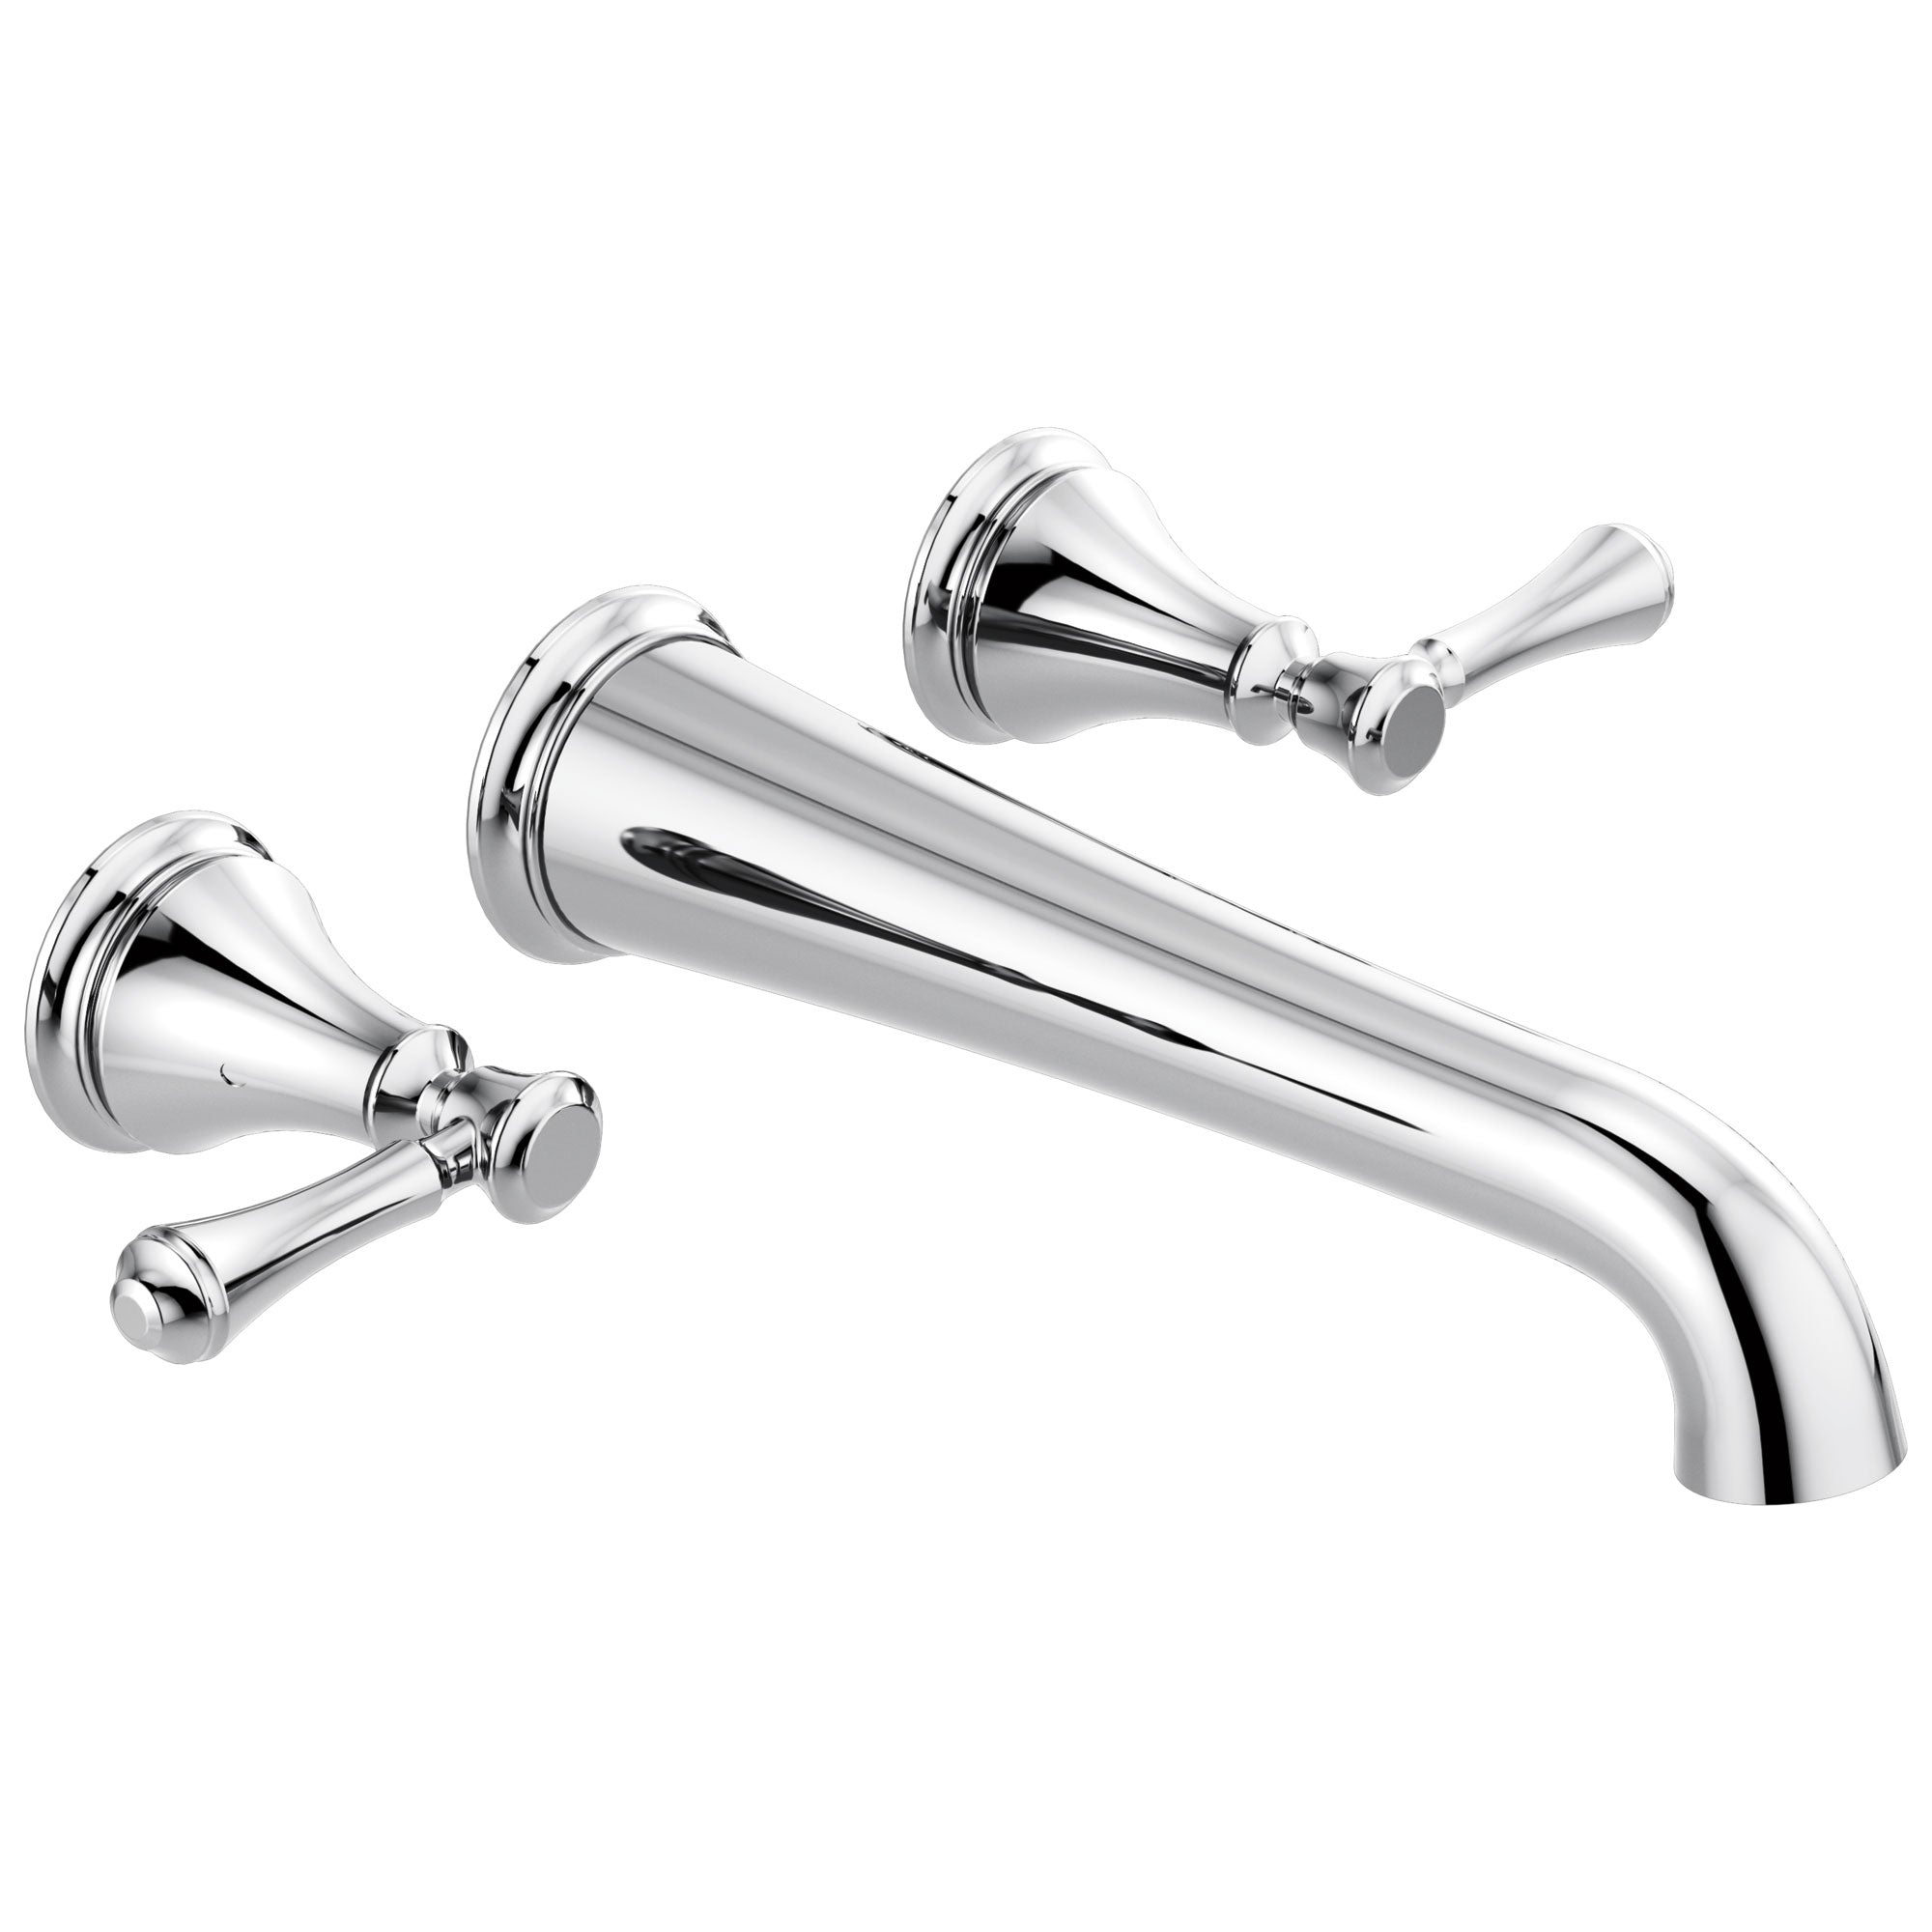 Delta Cassidy Chrome Finish 2 Handle Wall Mount Tub Filler Faucet Includes Rough-in Valve D3008V